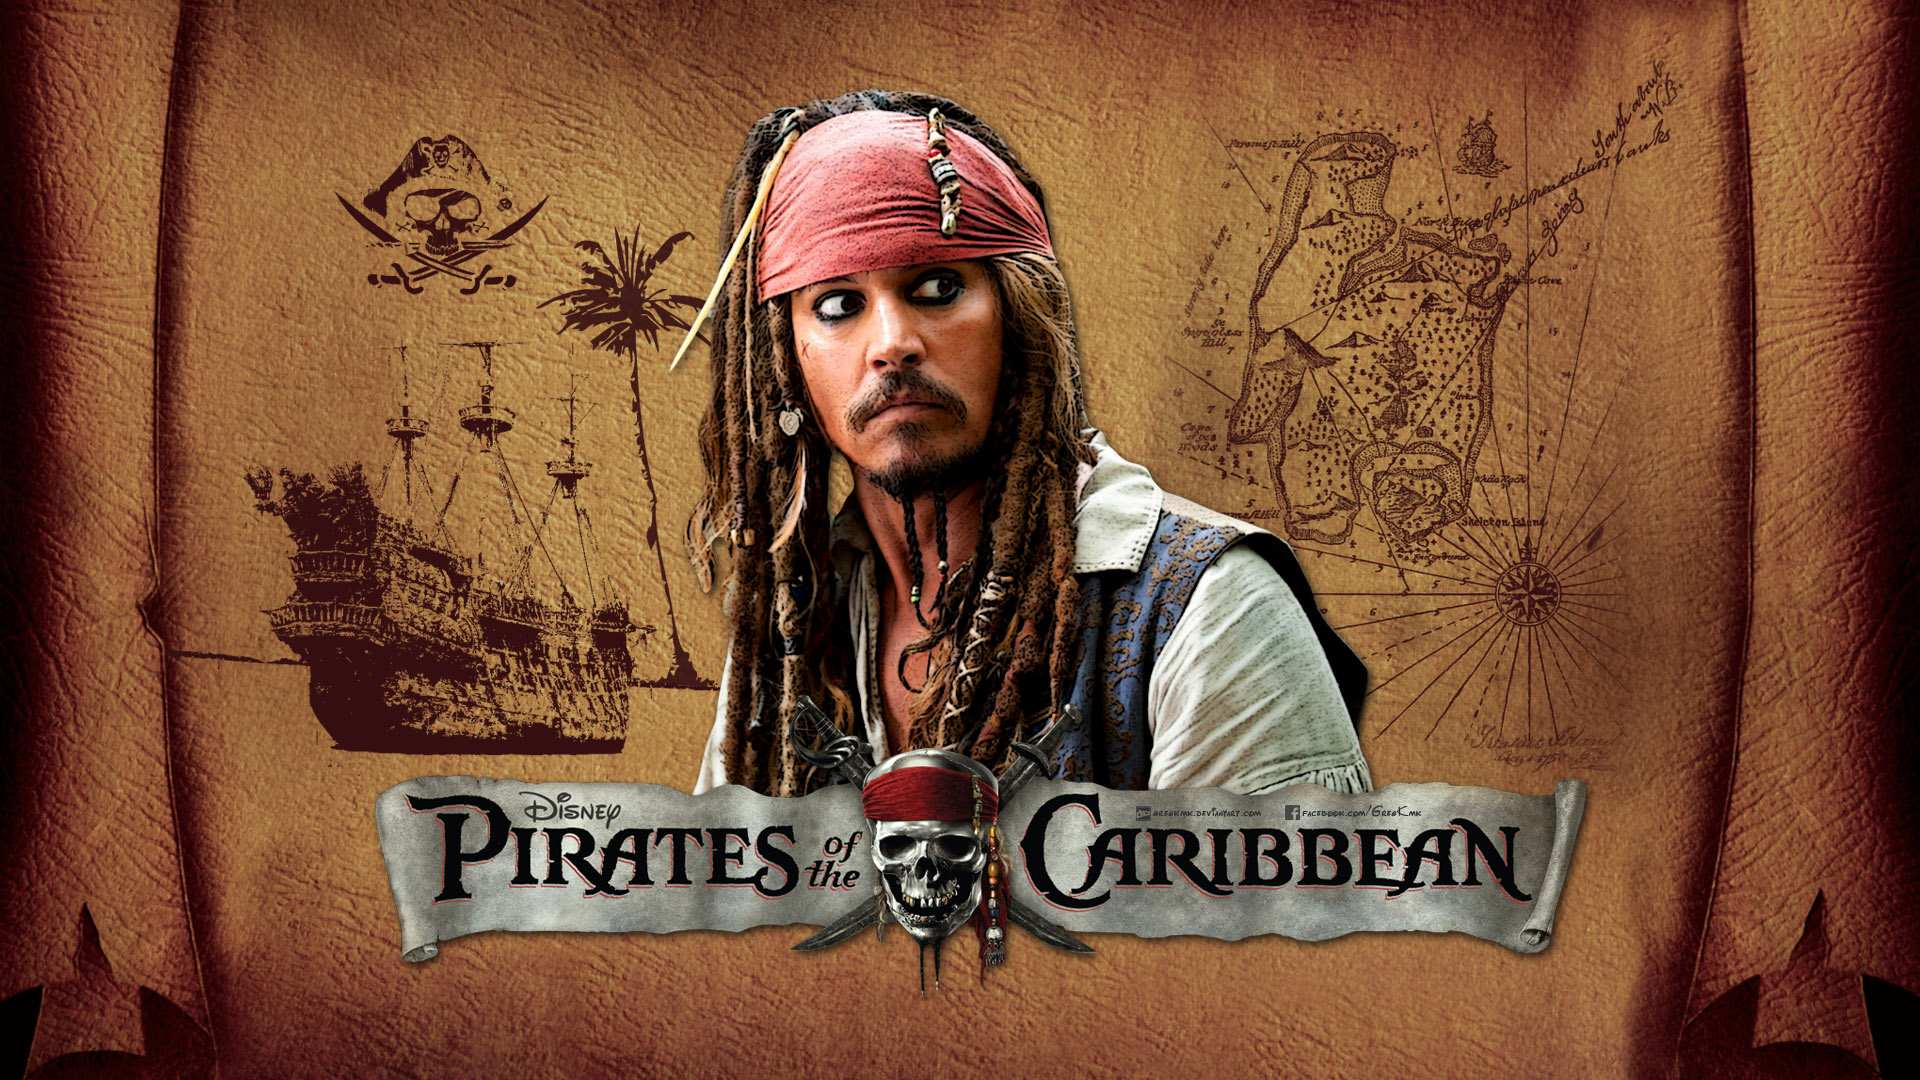 Pirates Of The Caribean Wallpaper: Pirates Of The Caribbean Wallpaper By GregKmk On DeviantArt